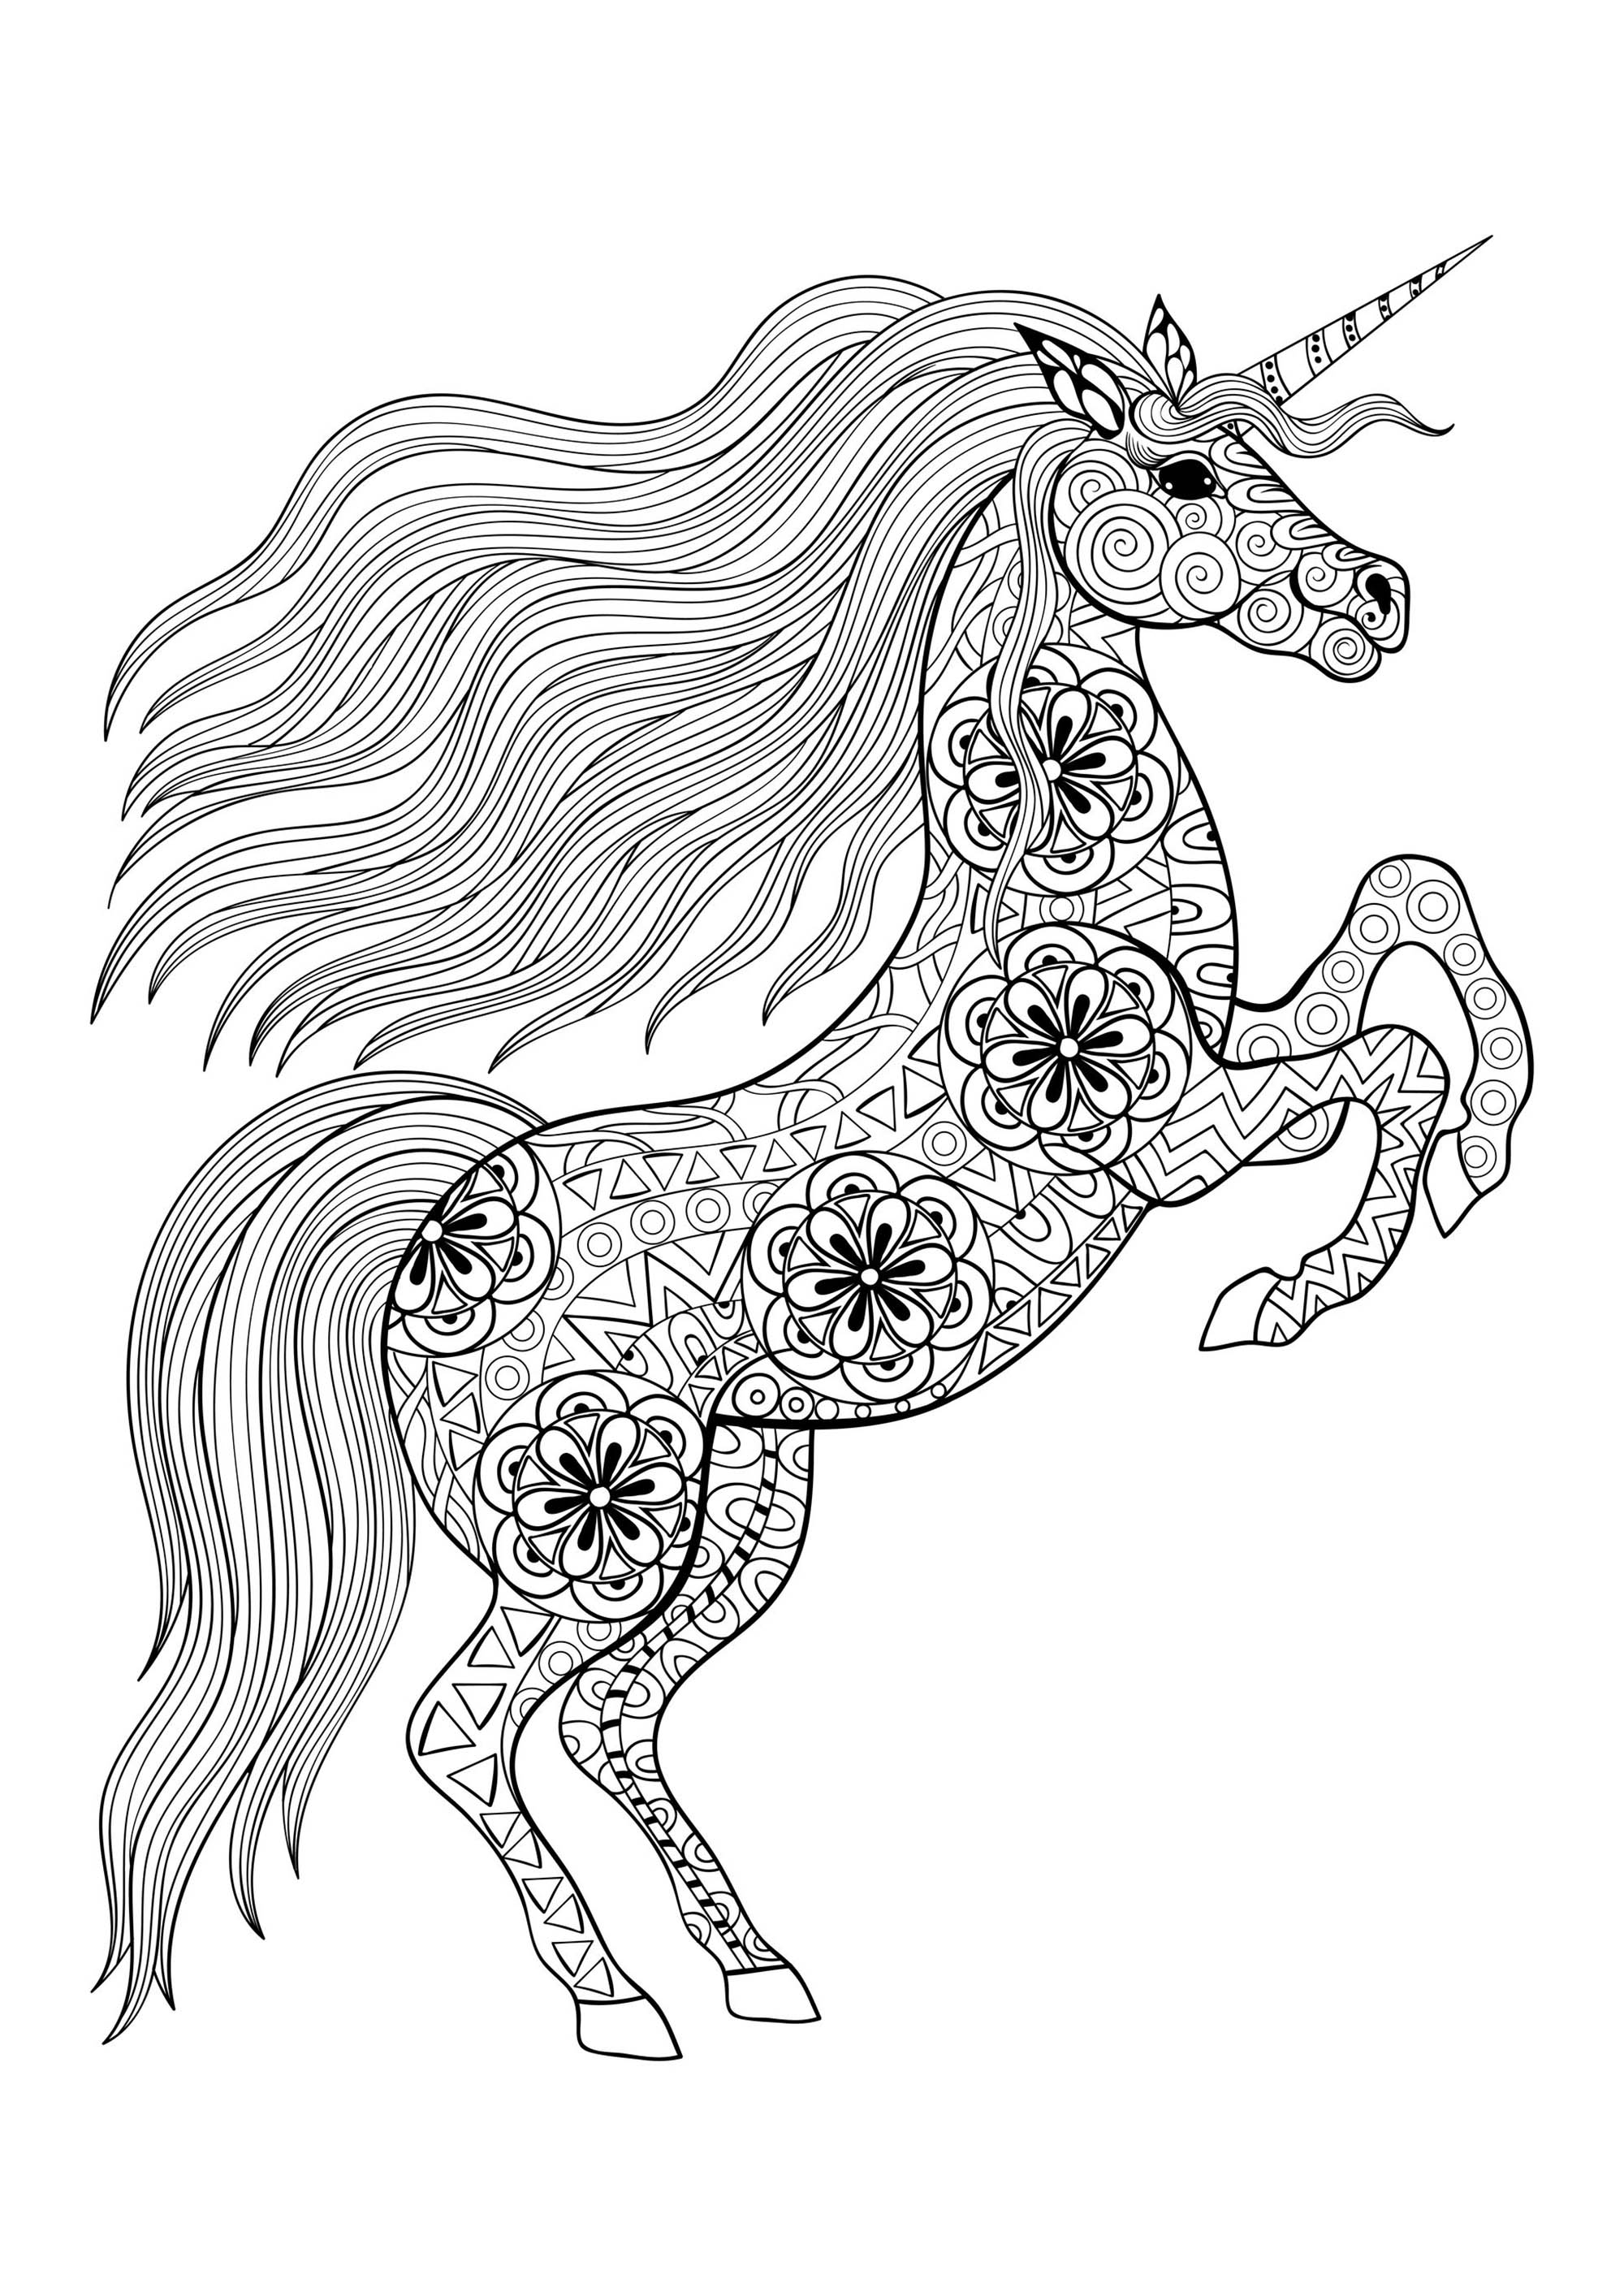 coloring sheet unicorn coloring pictures to print free printable sleeping unicorn pdf coloring page coloring coloring to print unicorn sheet pictures